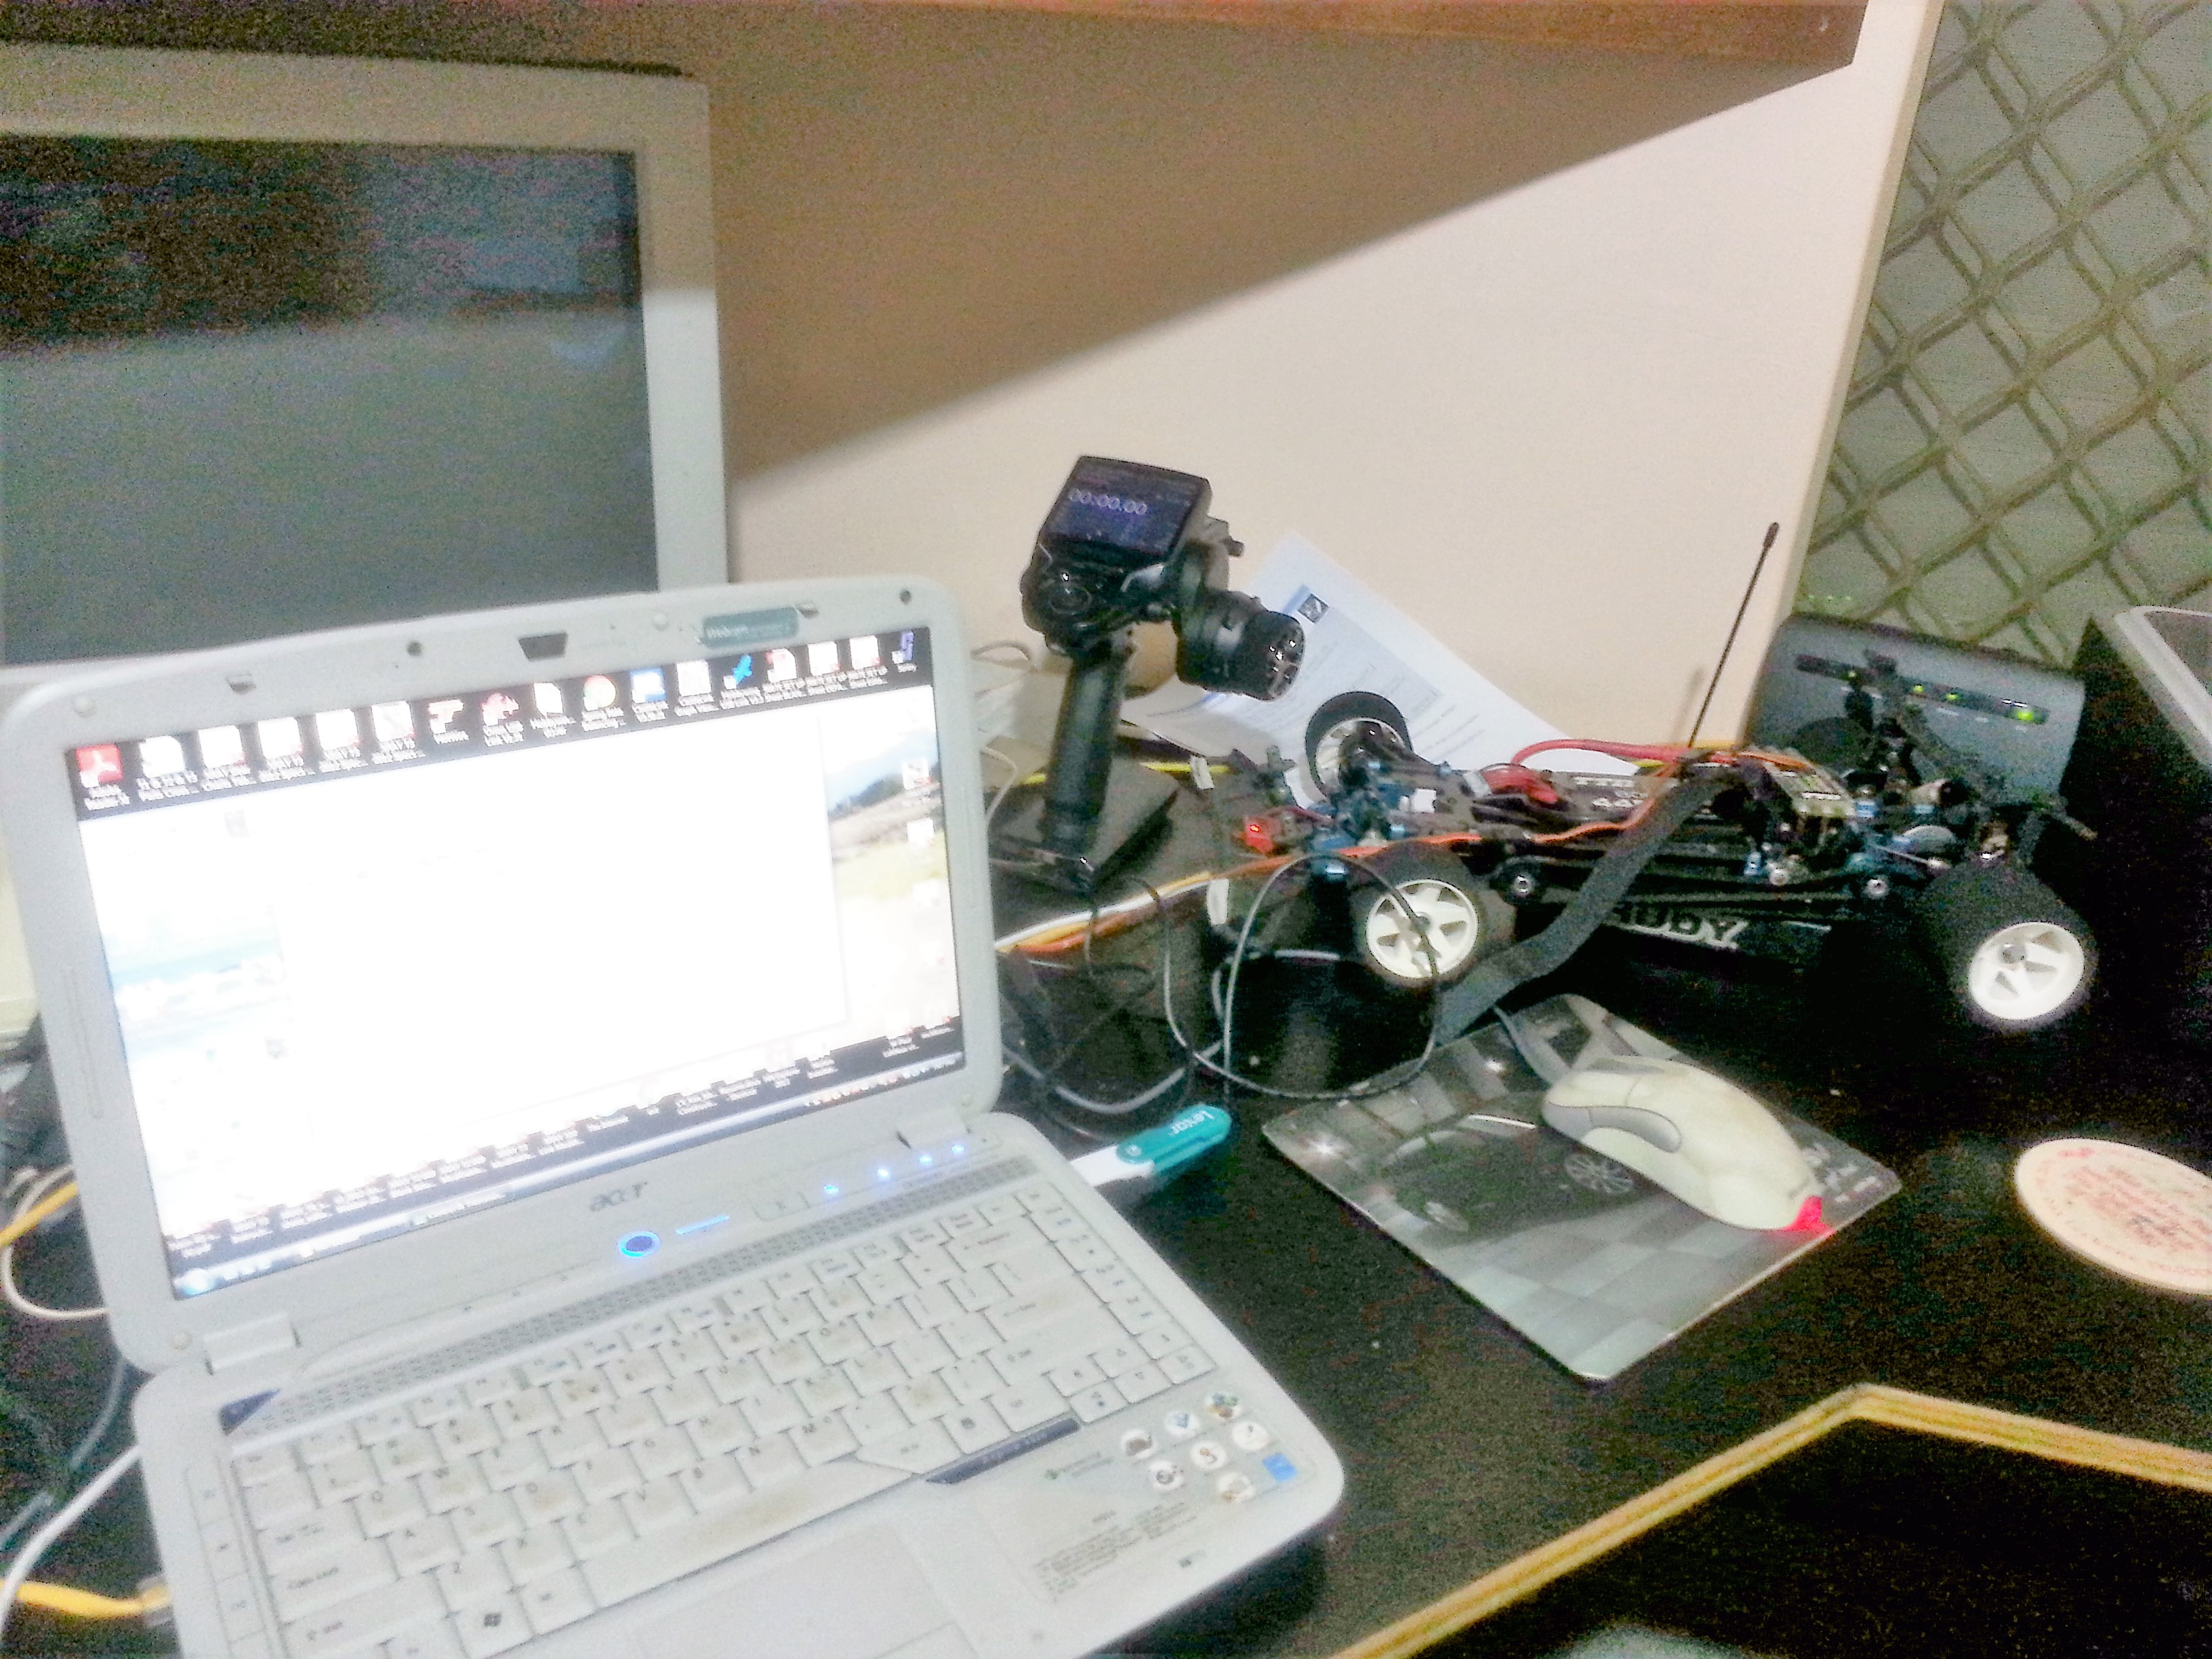 RC car connected to laptop USB port